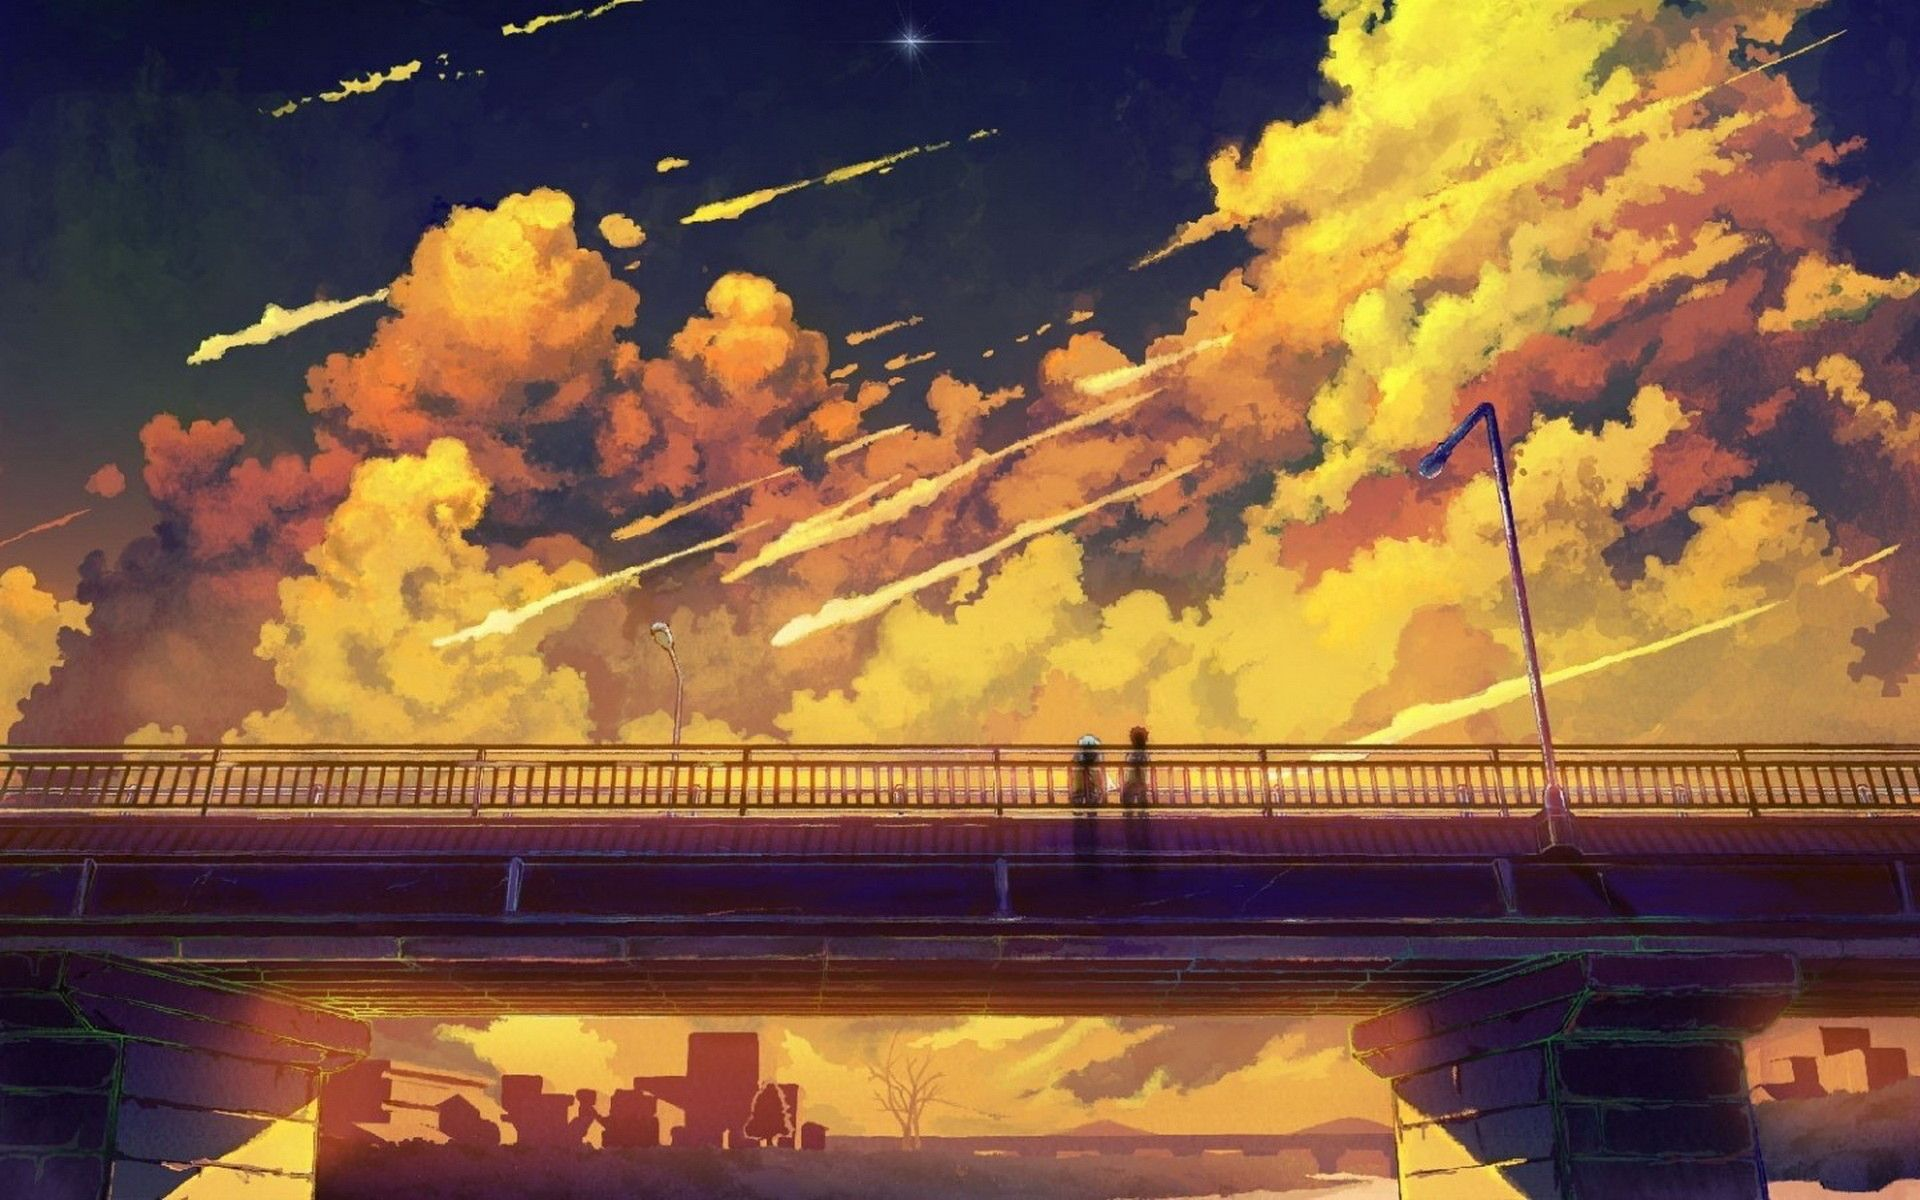 1920x1200 anime scenery high quality desktop wallpapers